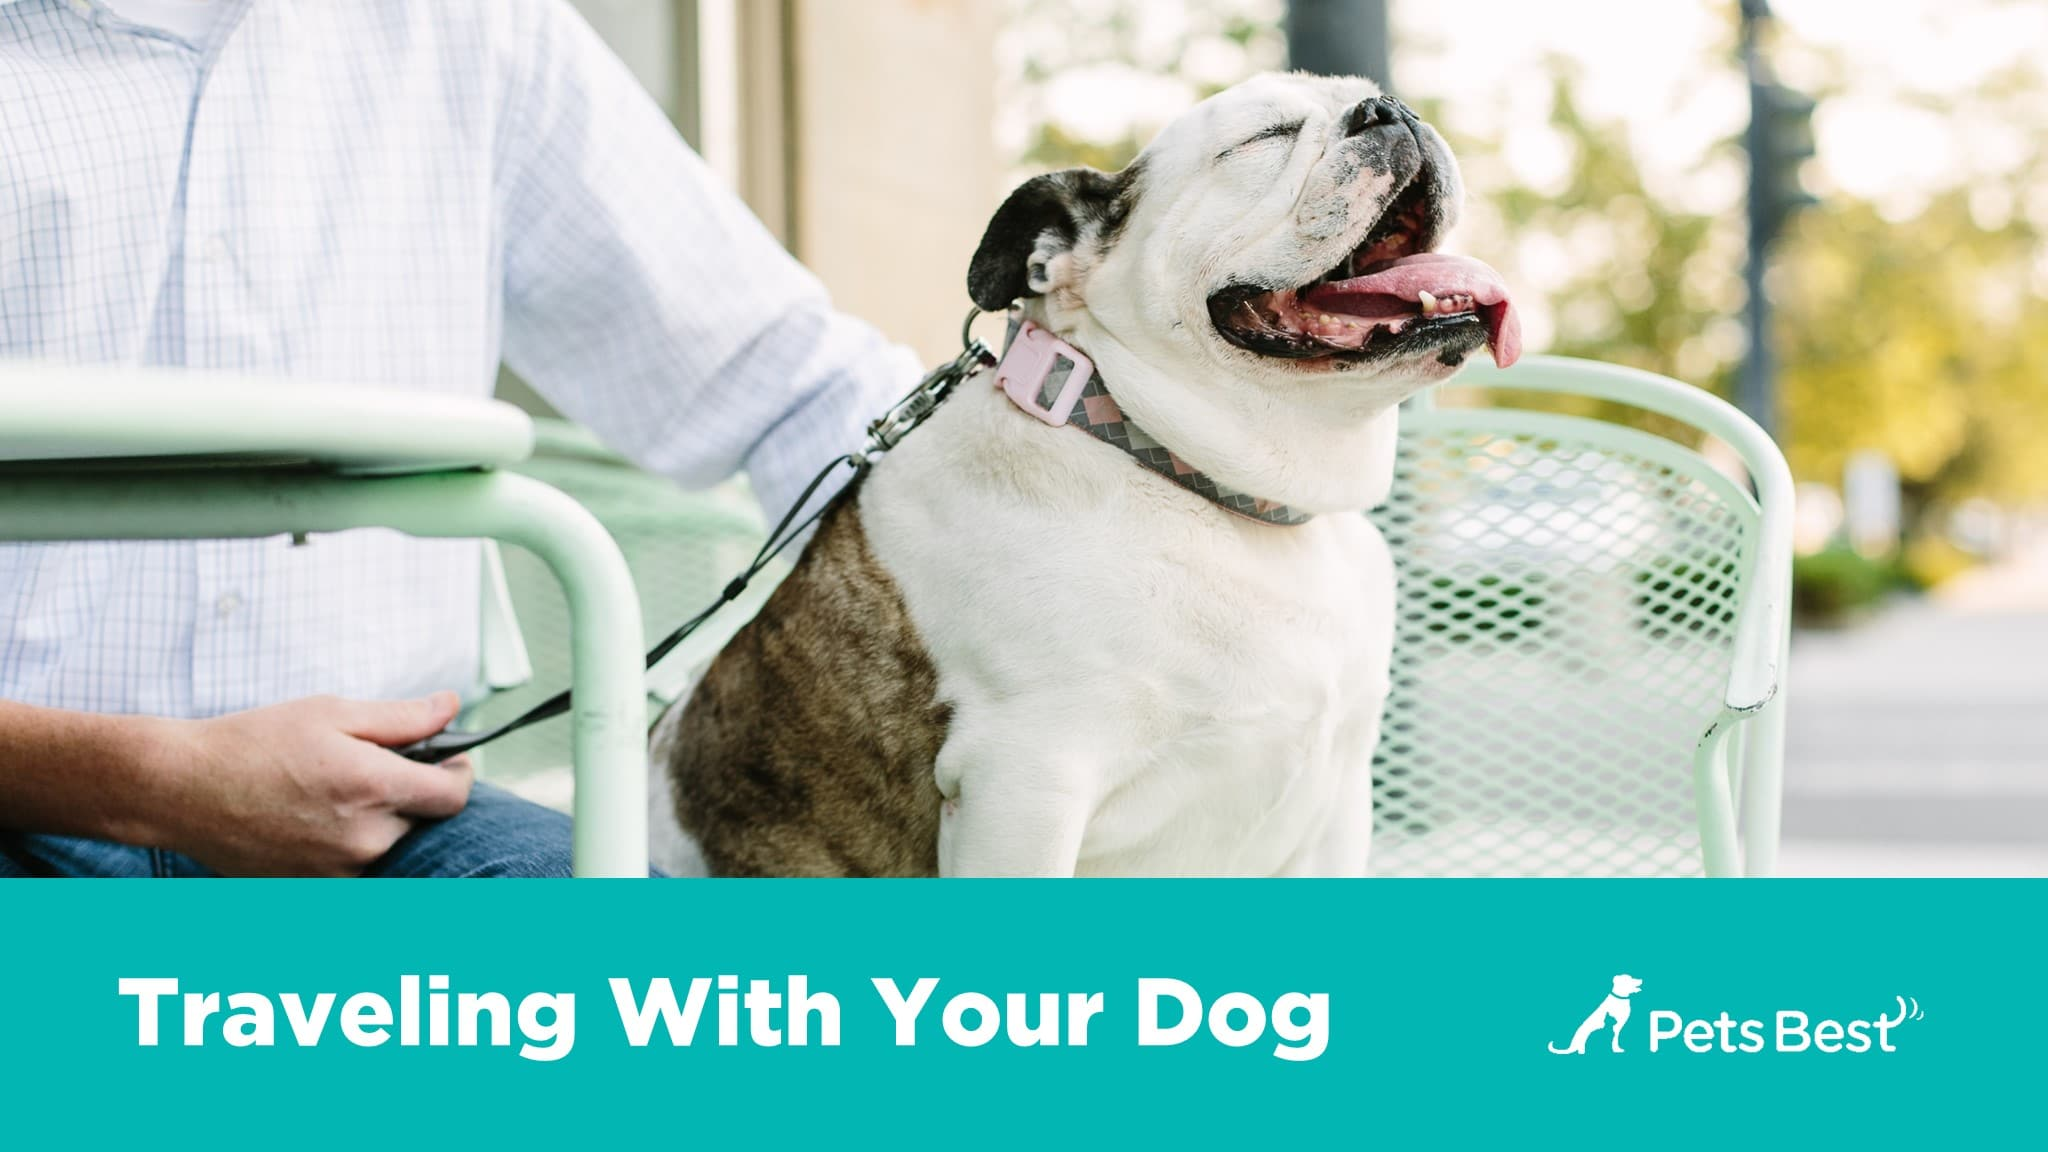 Watch An Owners Guide to Great Pet Health video